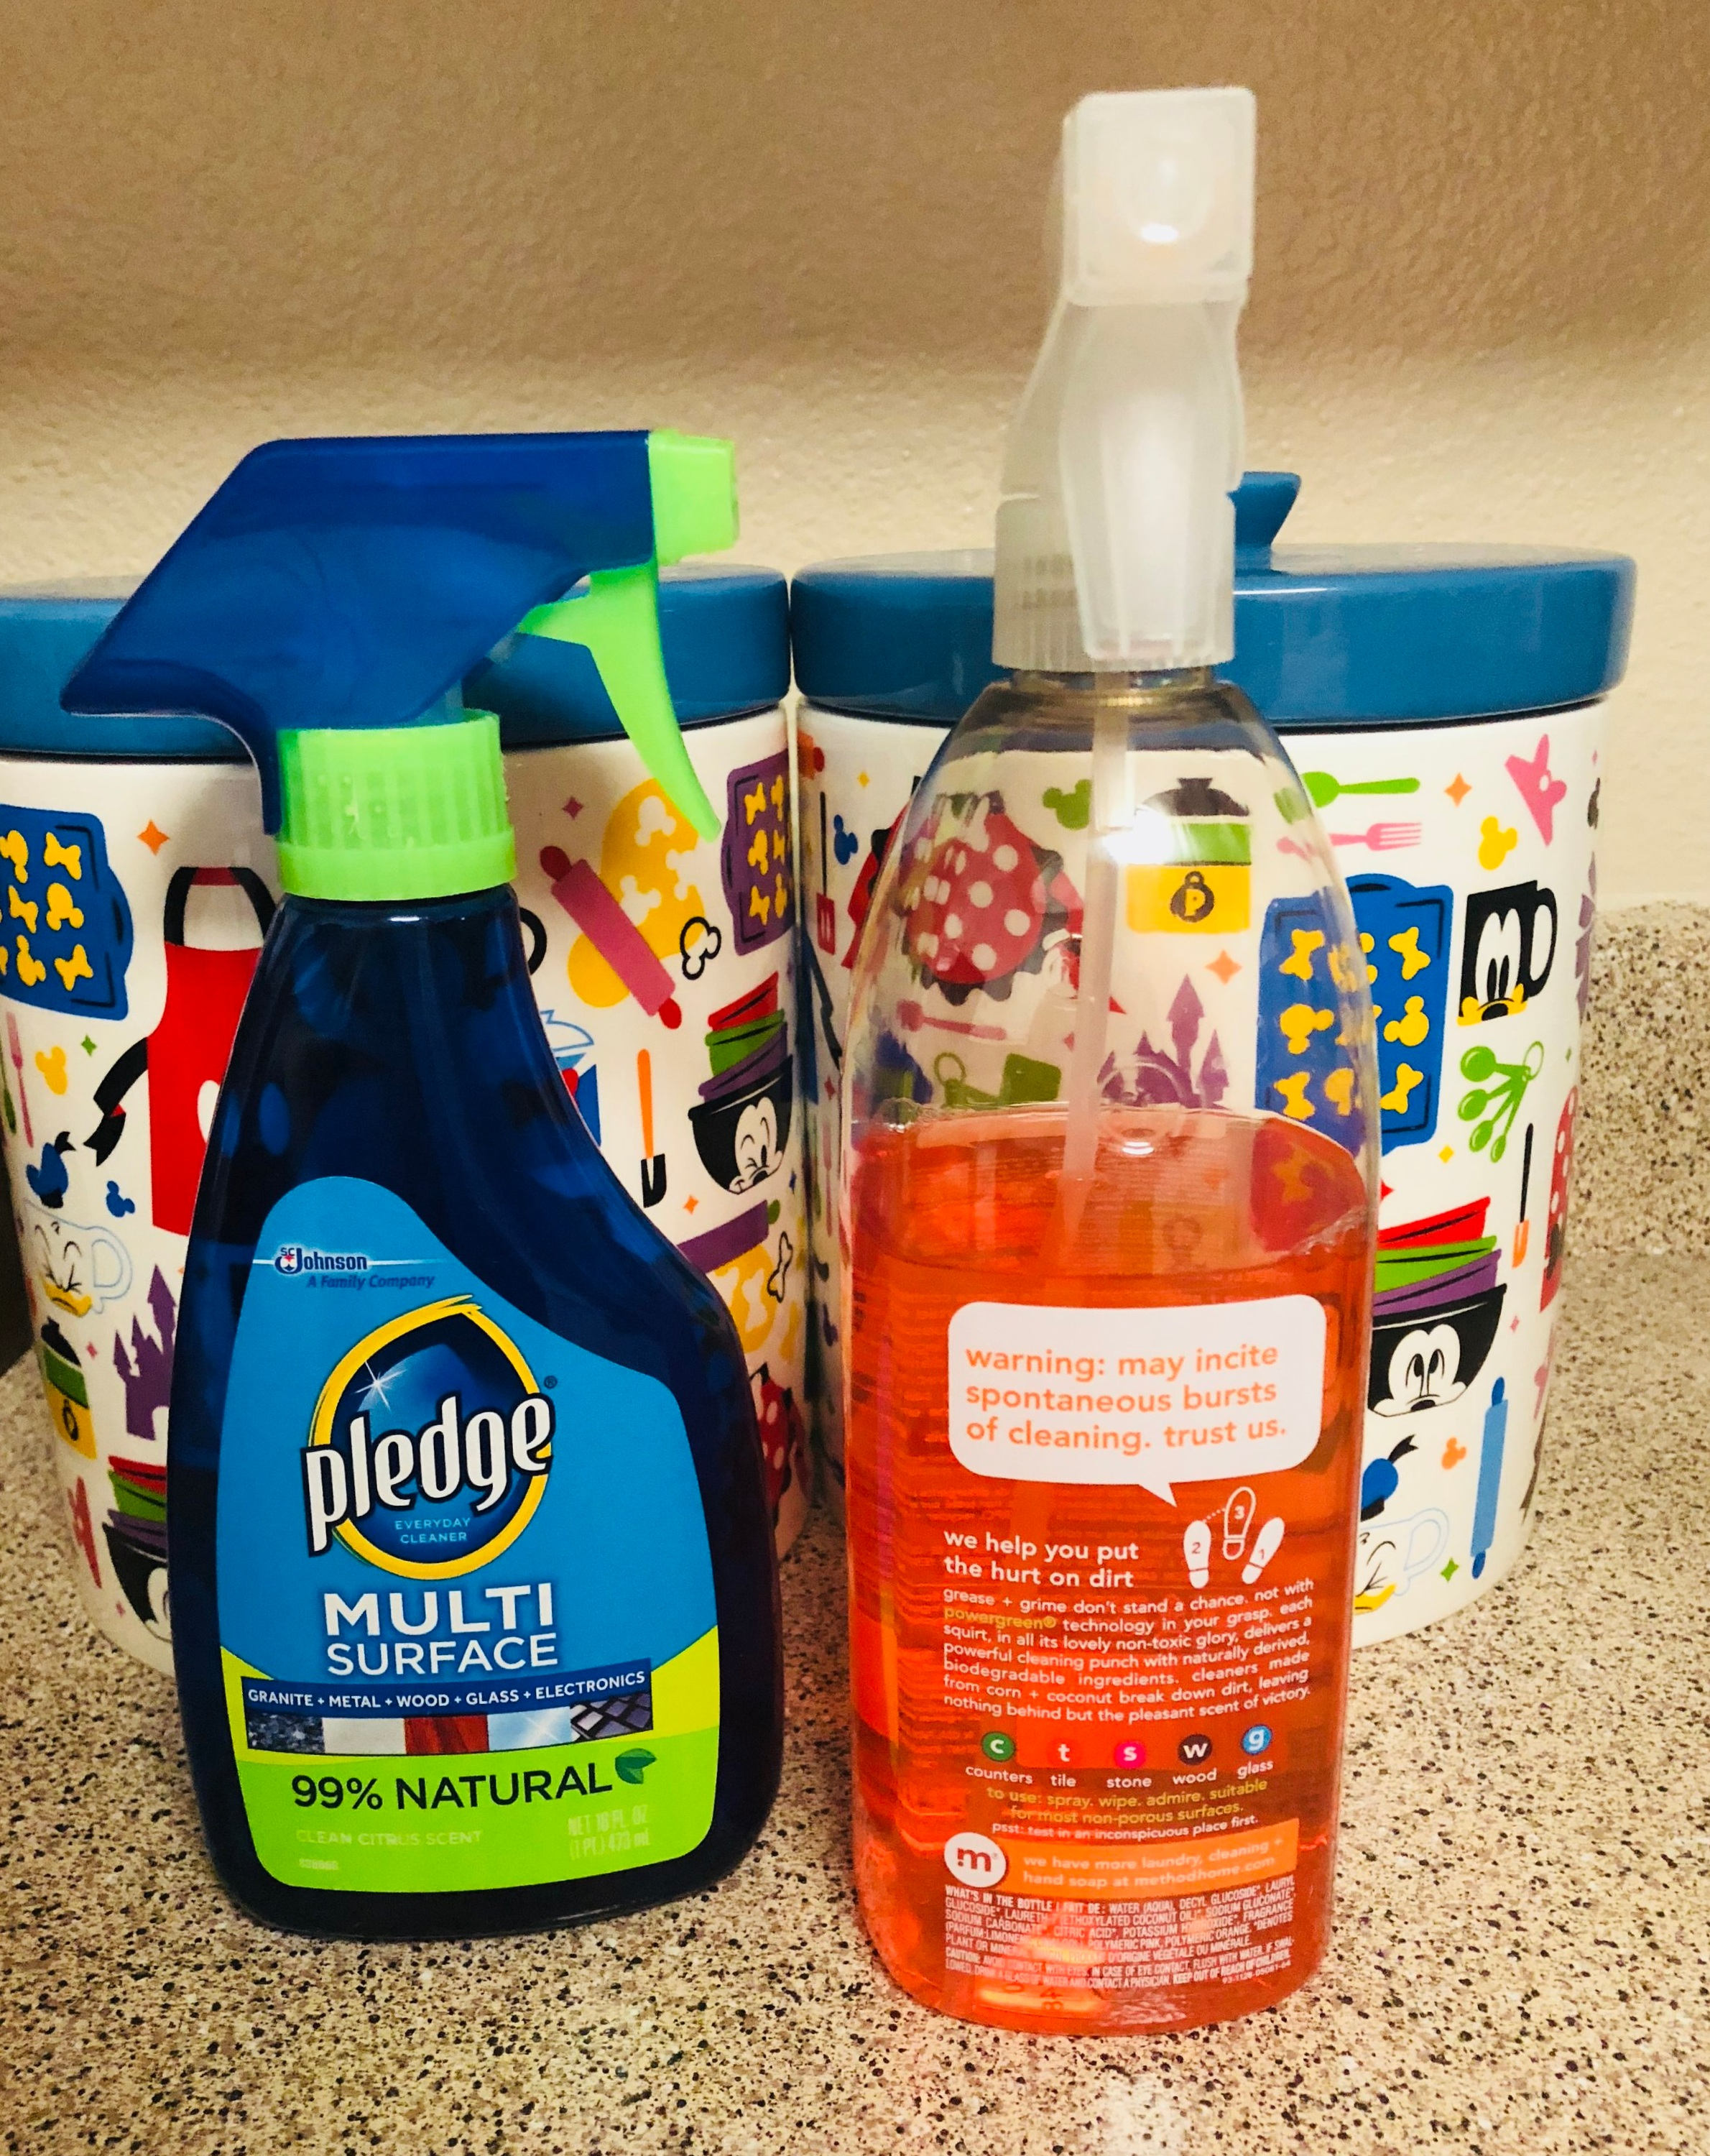 11 Time Saving Cleaning Tips To Make Life Easier. #cleaning #cleaningtips #cleaninghacks #momlife